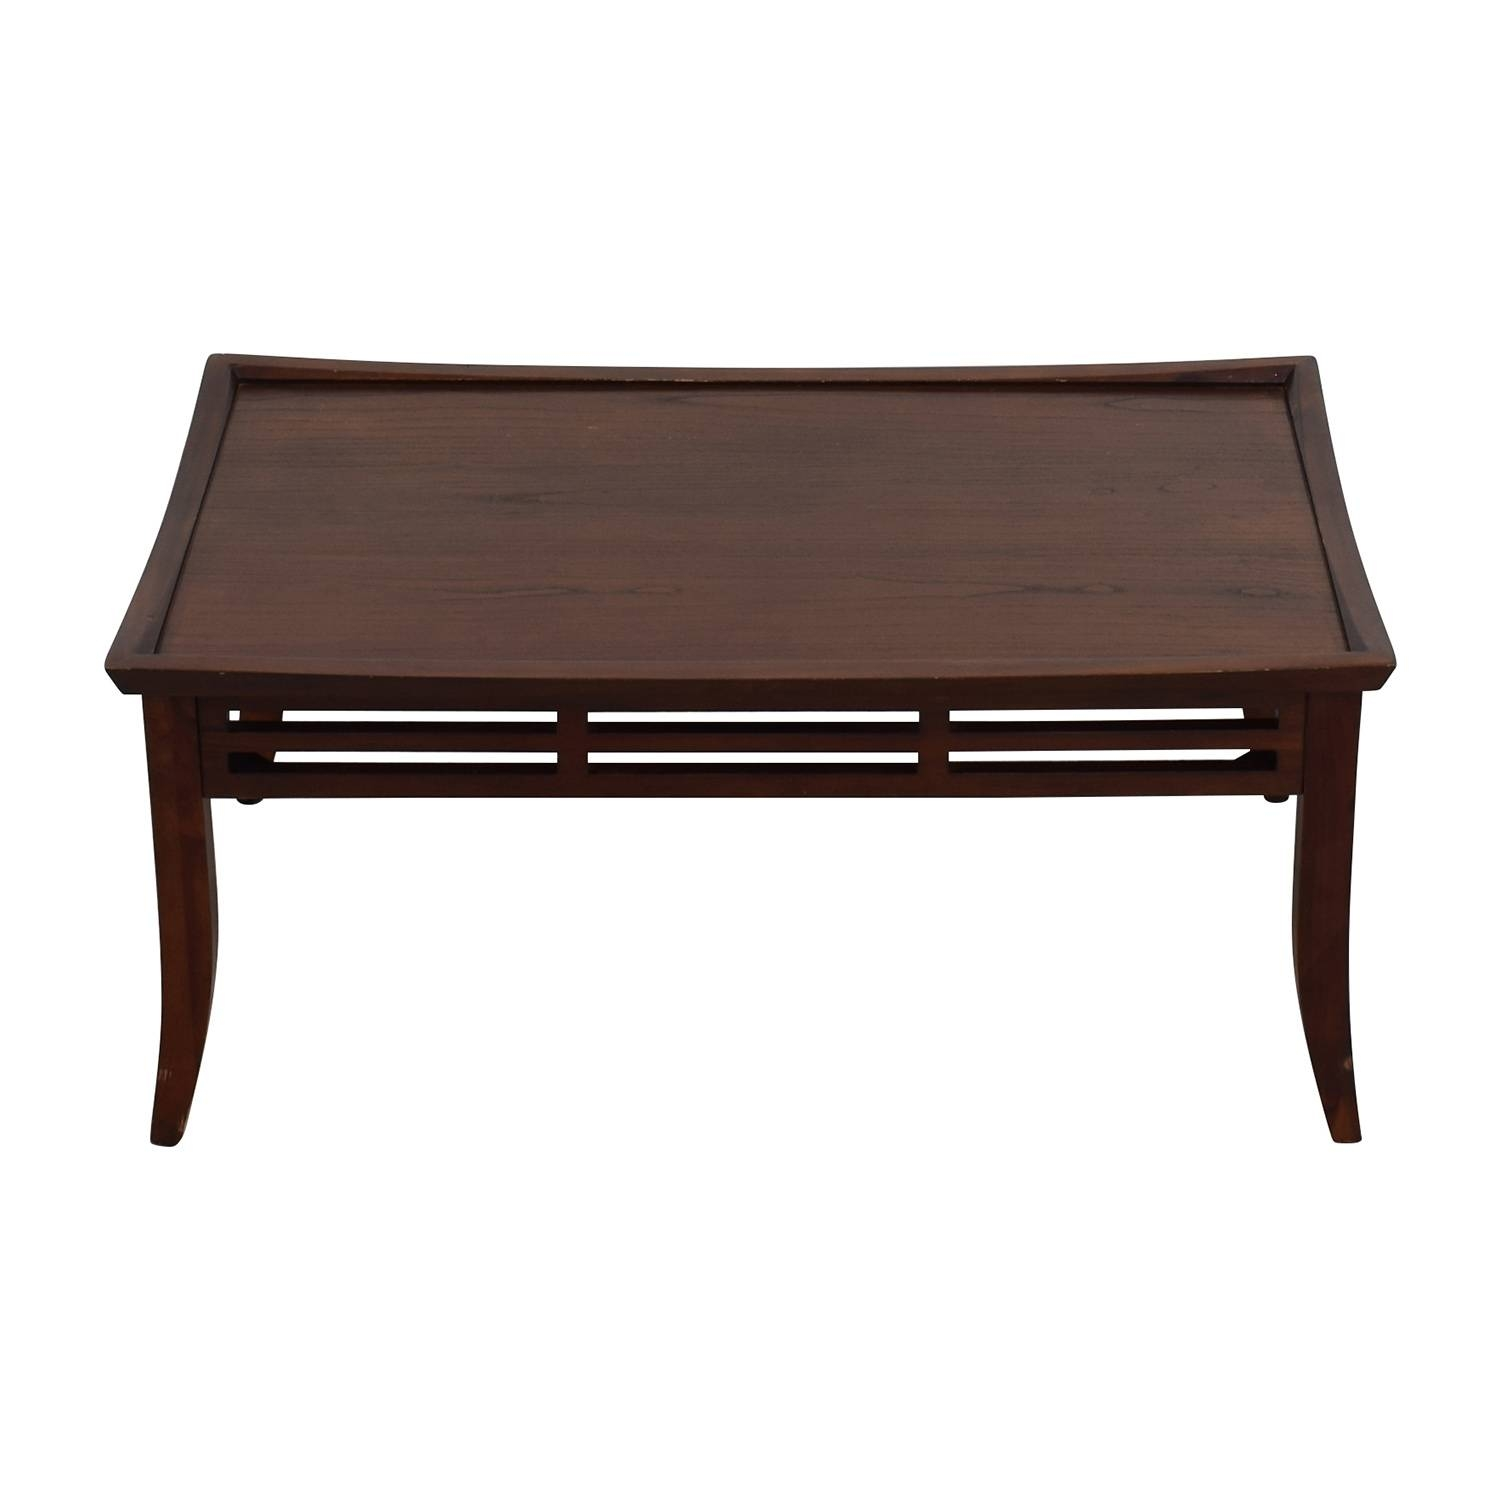 56% Off - Light Brown Coffee Table With Bottom Shelf / Tables throughout Dark Brown Coffee Tables (Image 2 of 30)